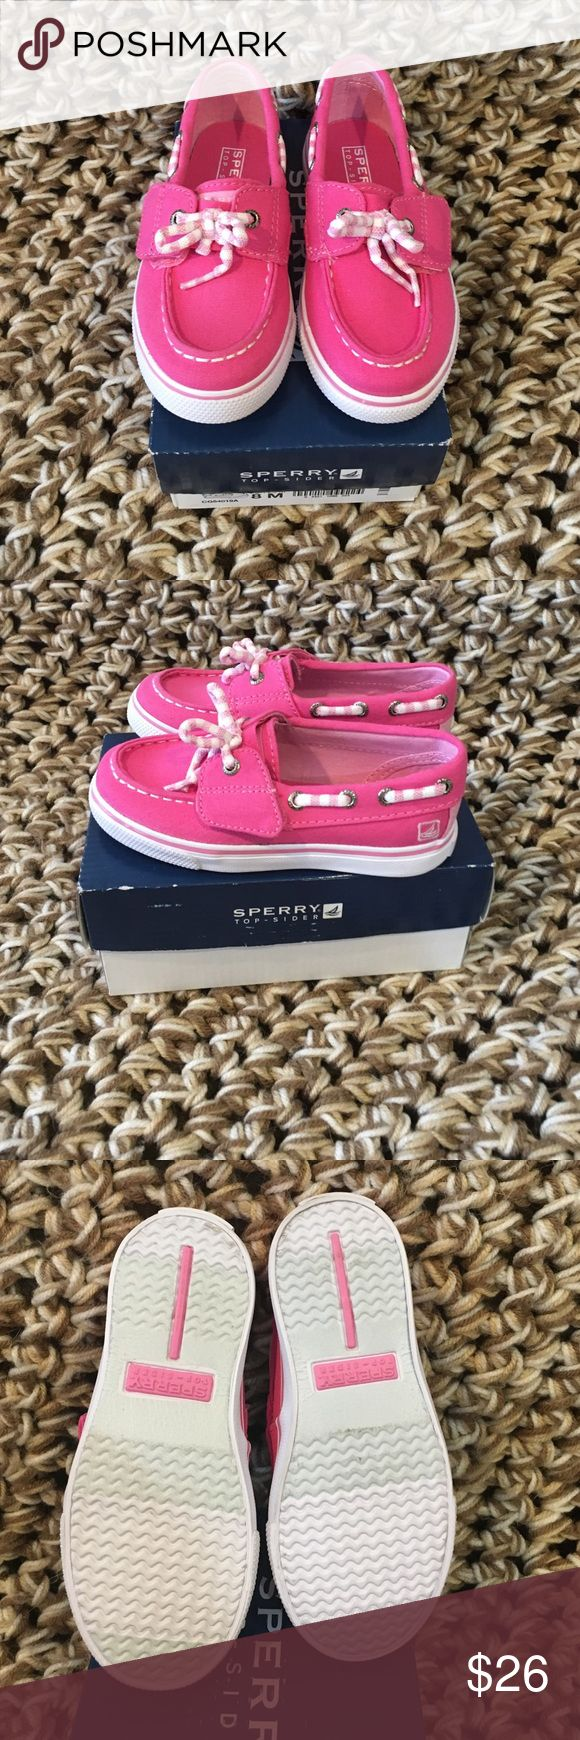 **FIRM** ❤️️Cutest Pink/White Sperry Top-Sider's Cutest Ever Pink and White Sperry's Top-Sider's. Toddler size 8. Brand new, never been worn except for to try on in the store. There are some marks on the bottom from walking around the store. Sperry Top-Sider Shoes Sneakers